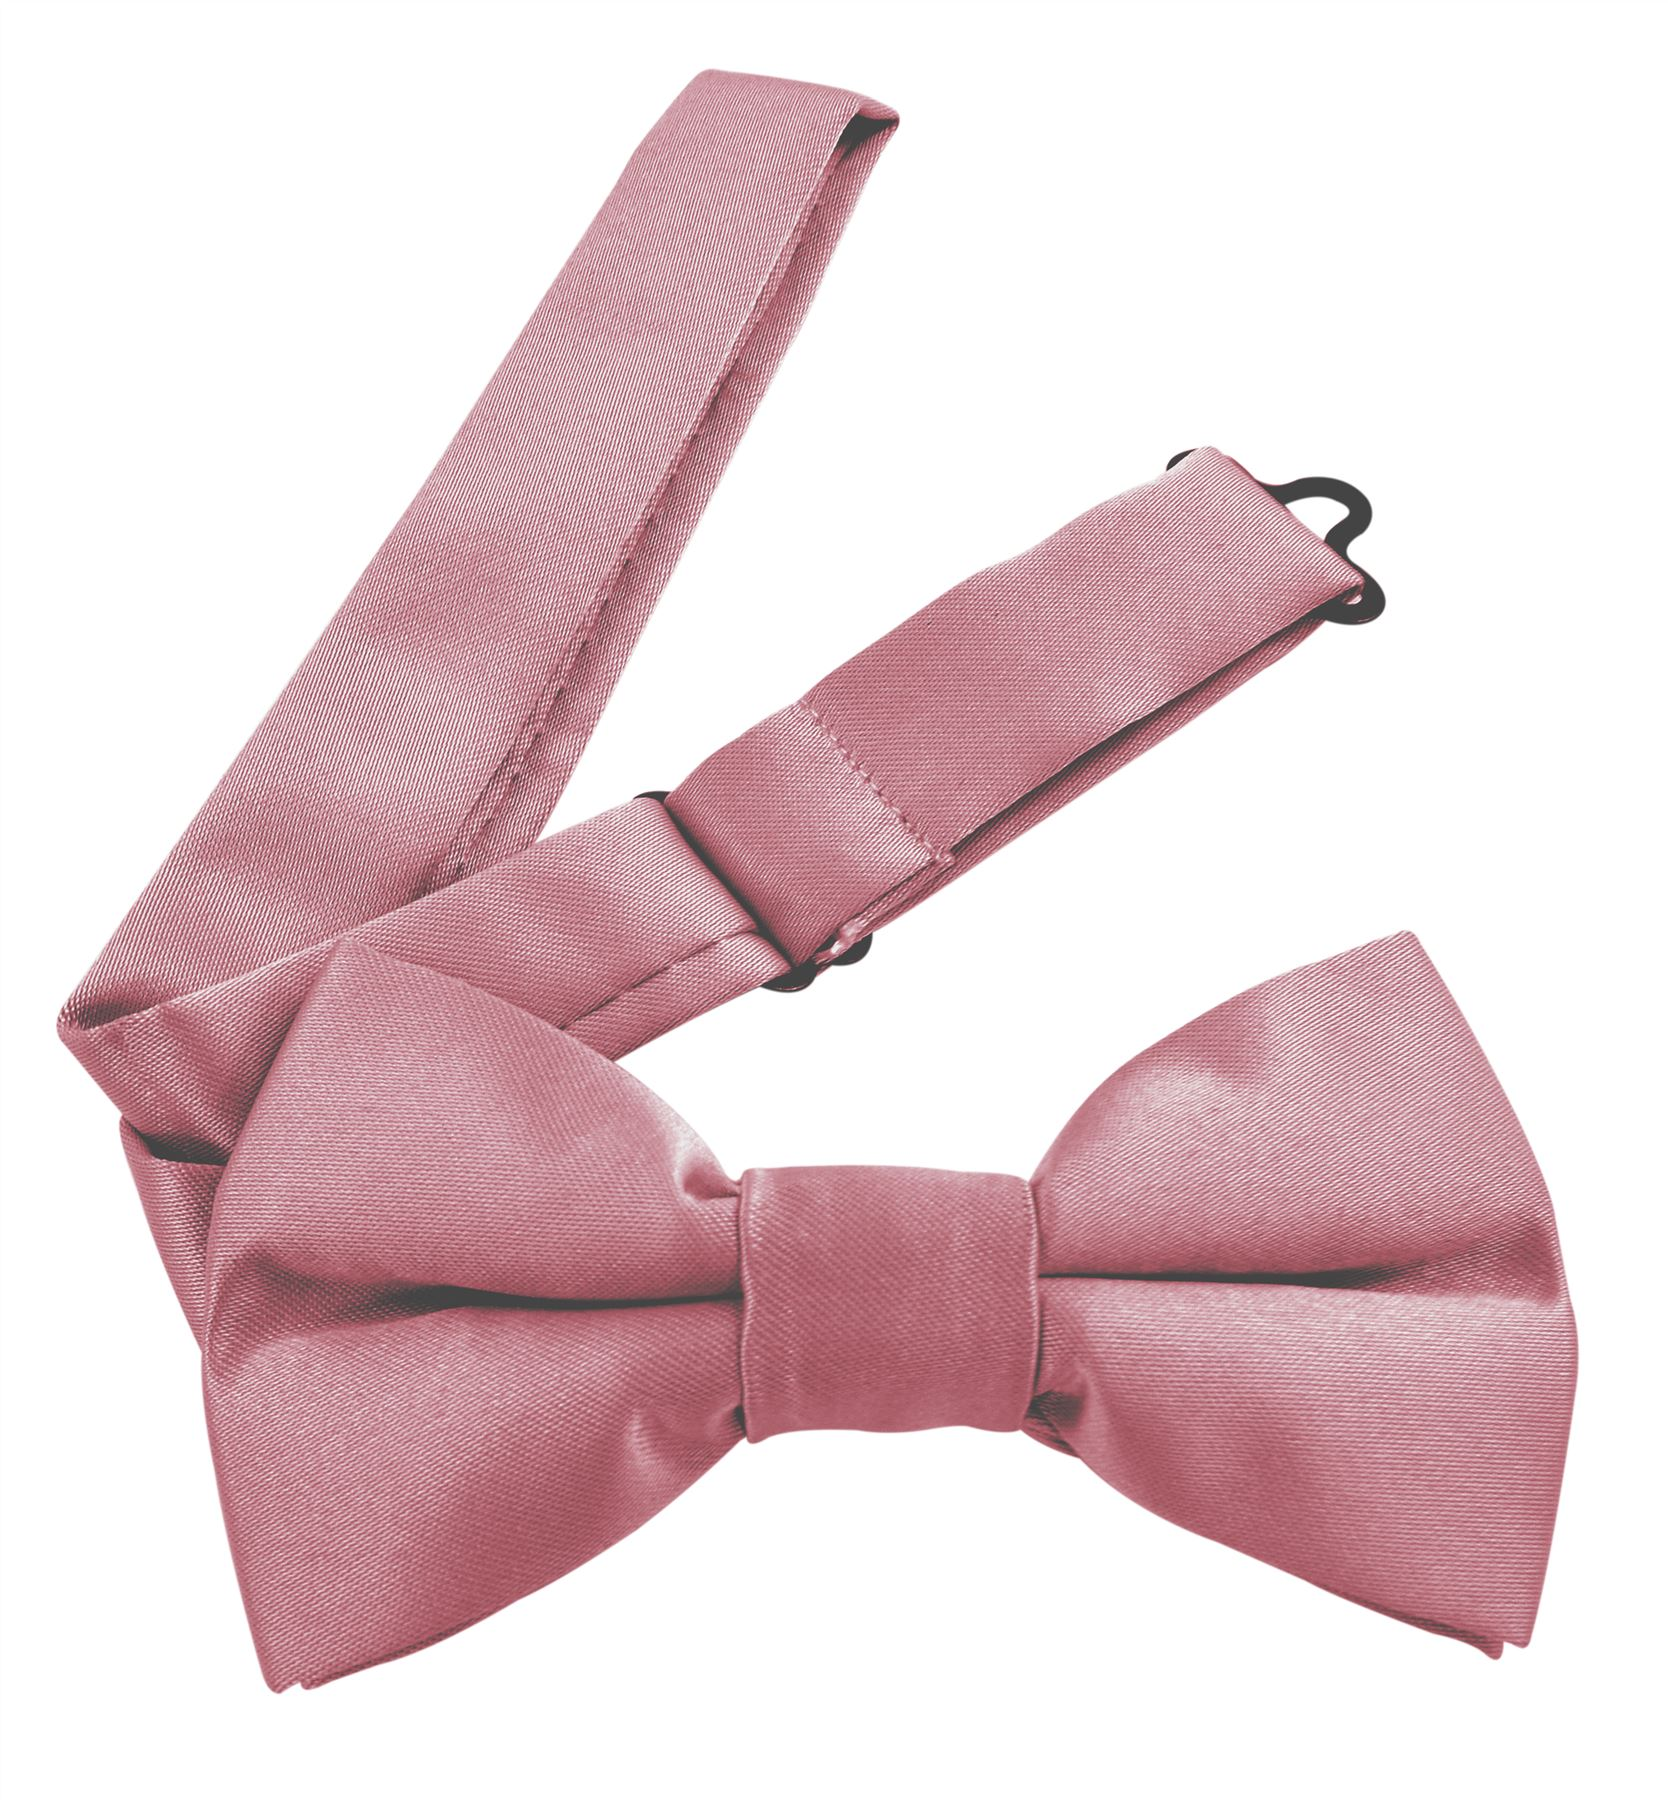 Moda Di Raza Men's Pre Tied Classic 2.5 Inch Bowties with Adjustable Strap - Dust Pink